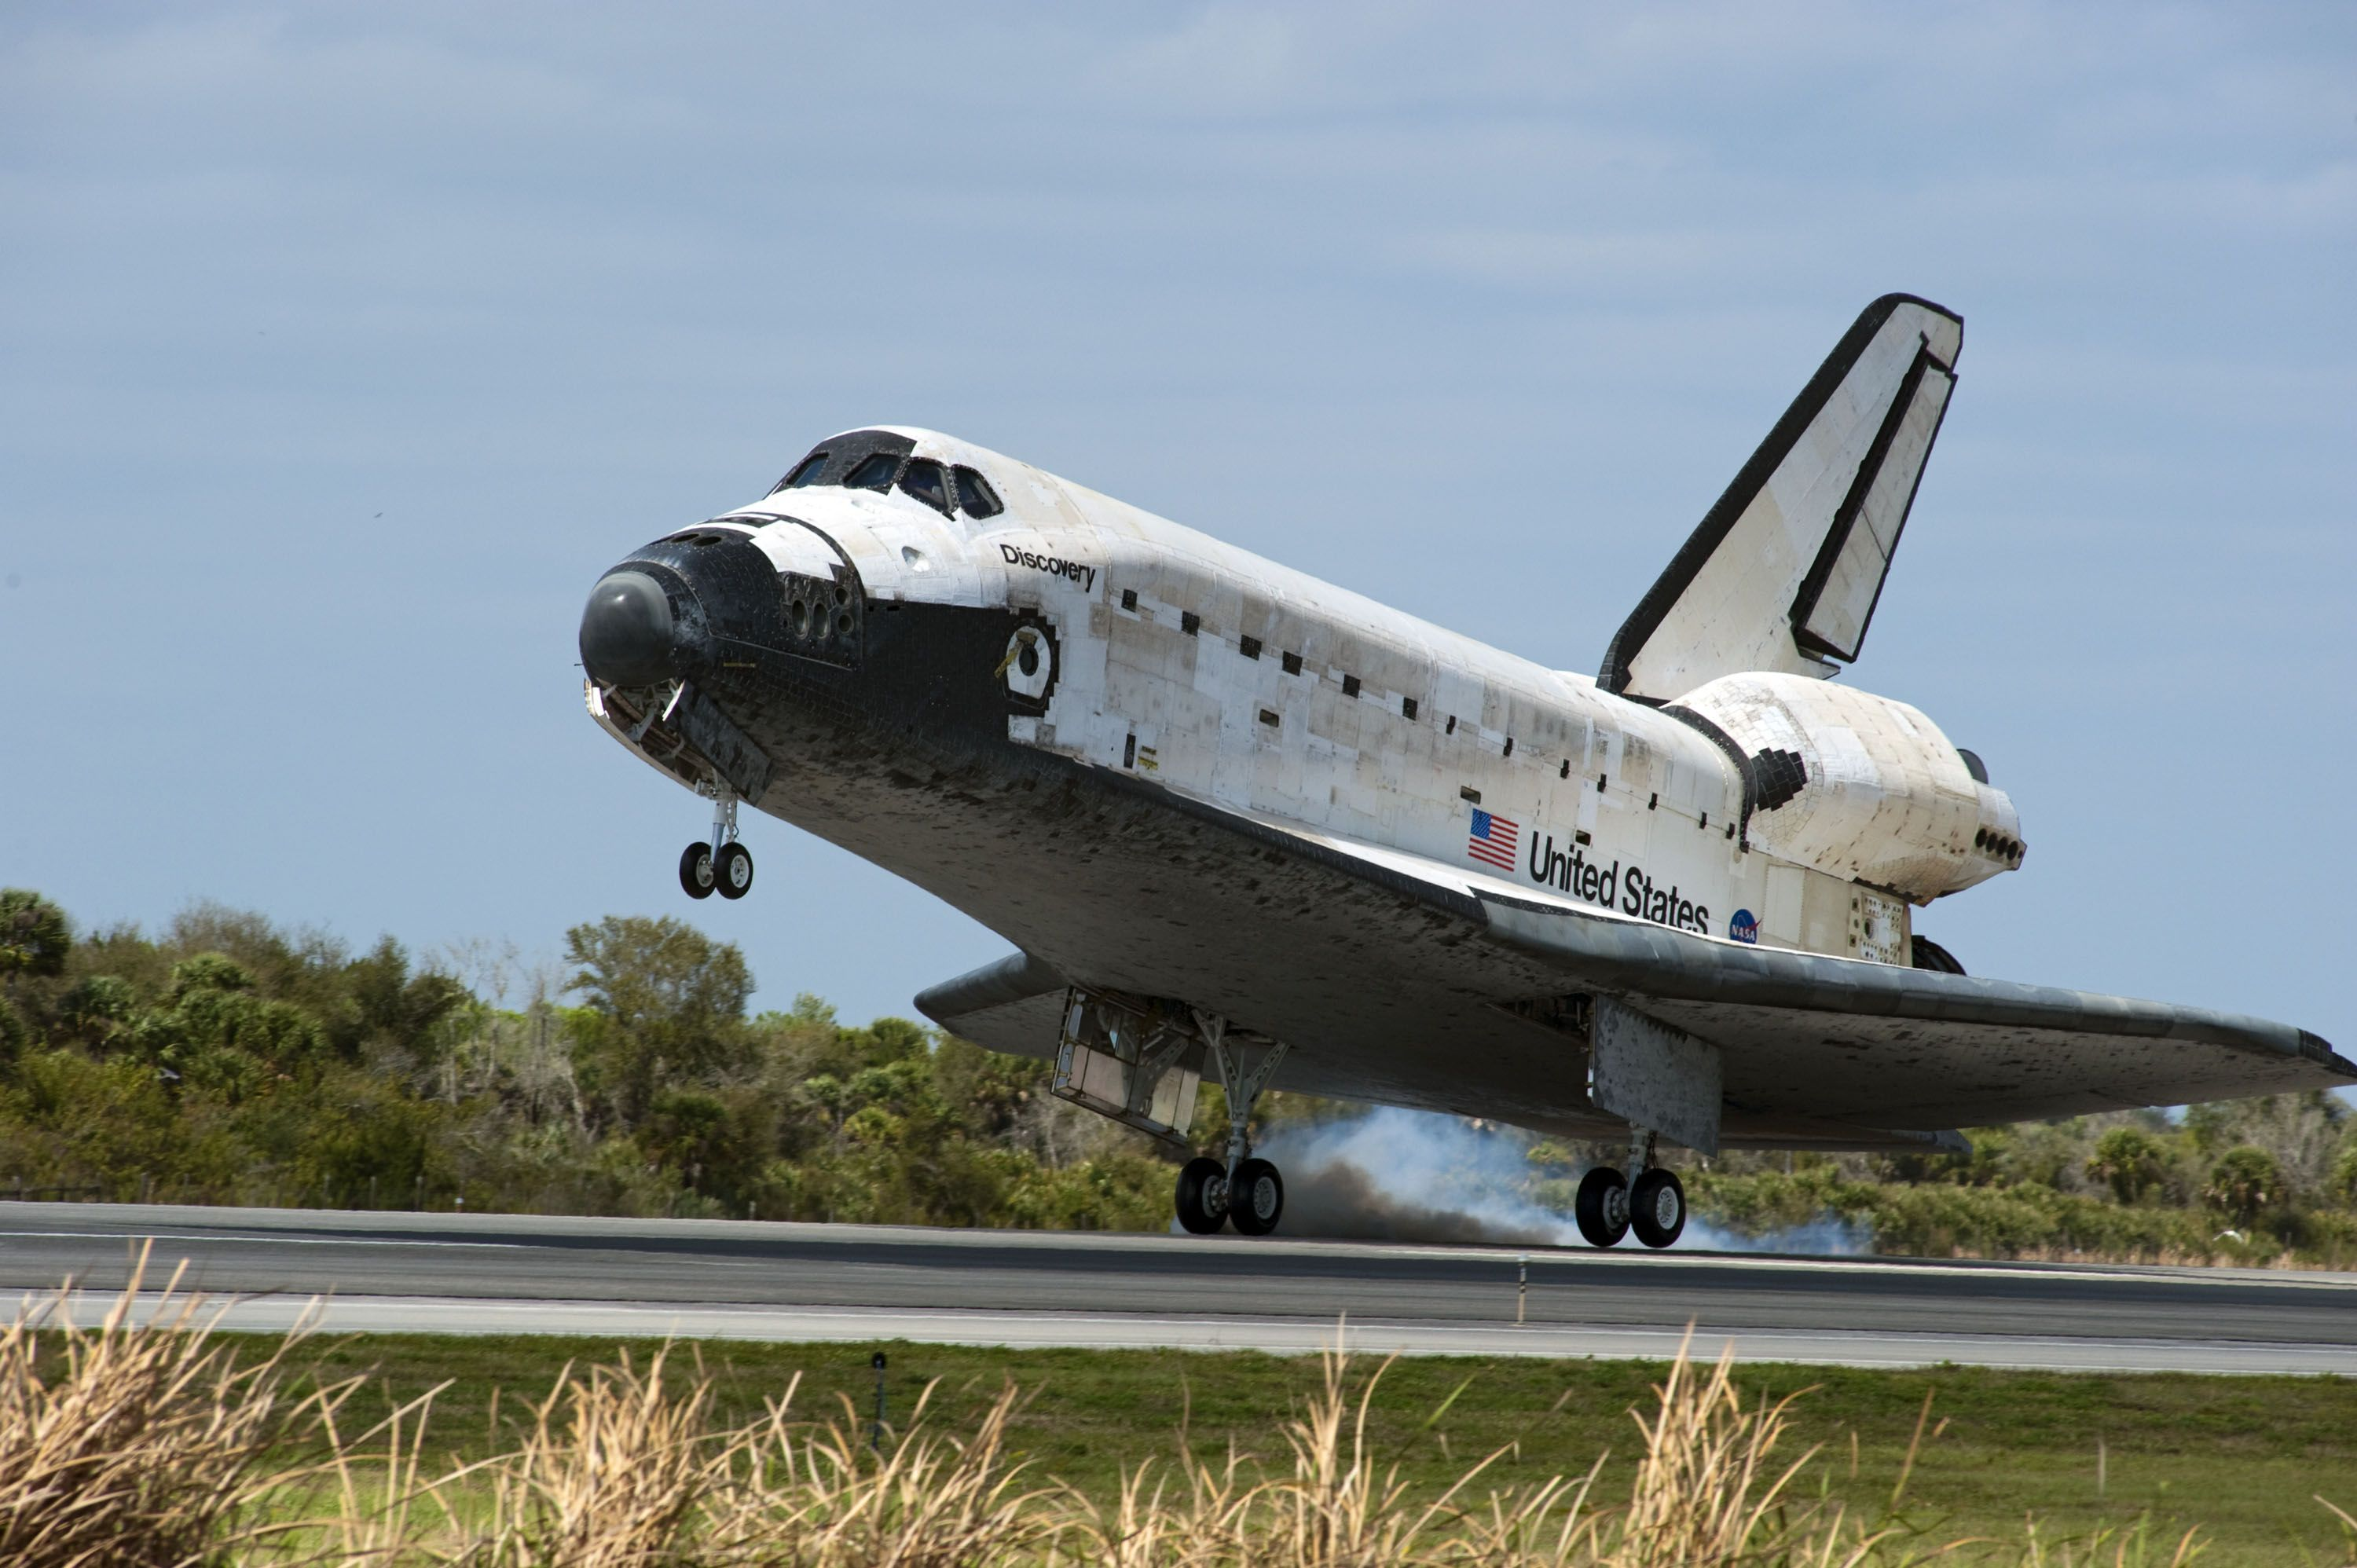 visit space shuttle discovery - photo #45